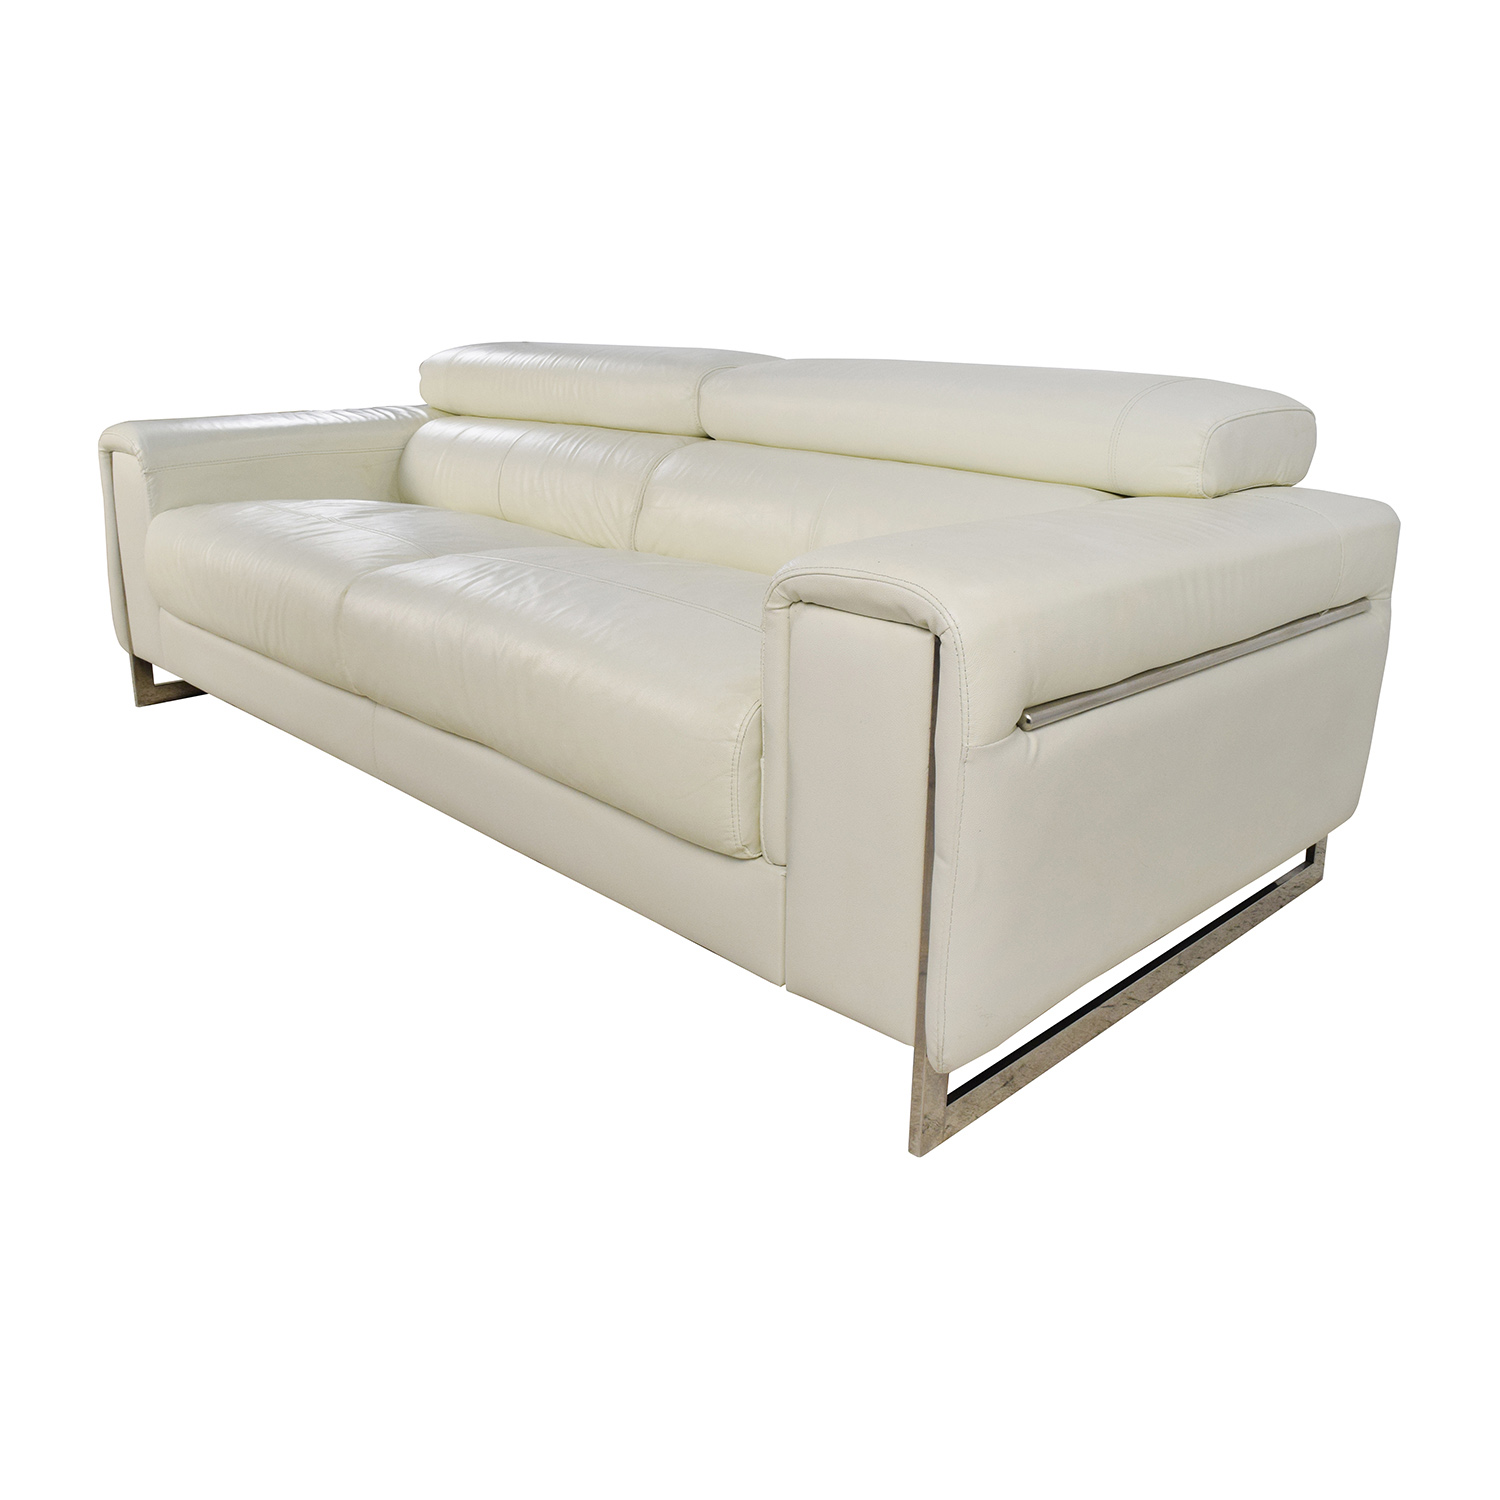 White leather sofa wasedajp home deco inspirations for White leather sofa